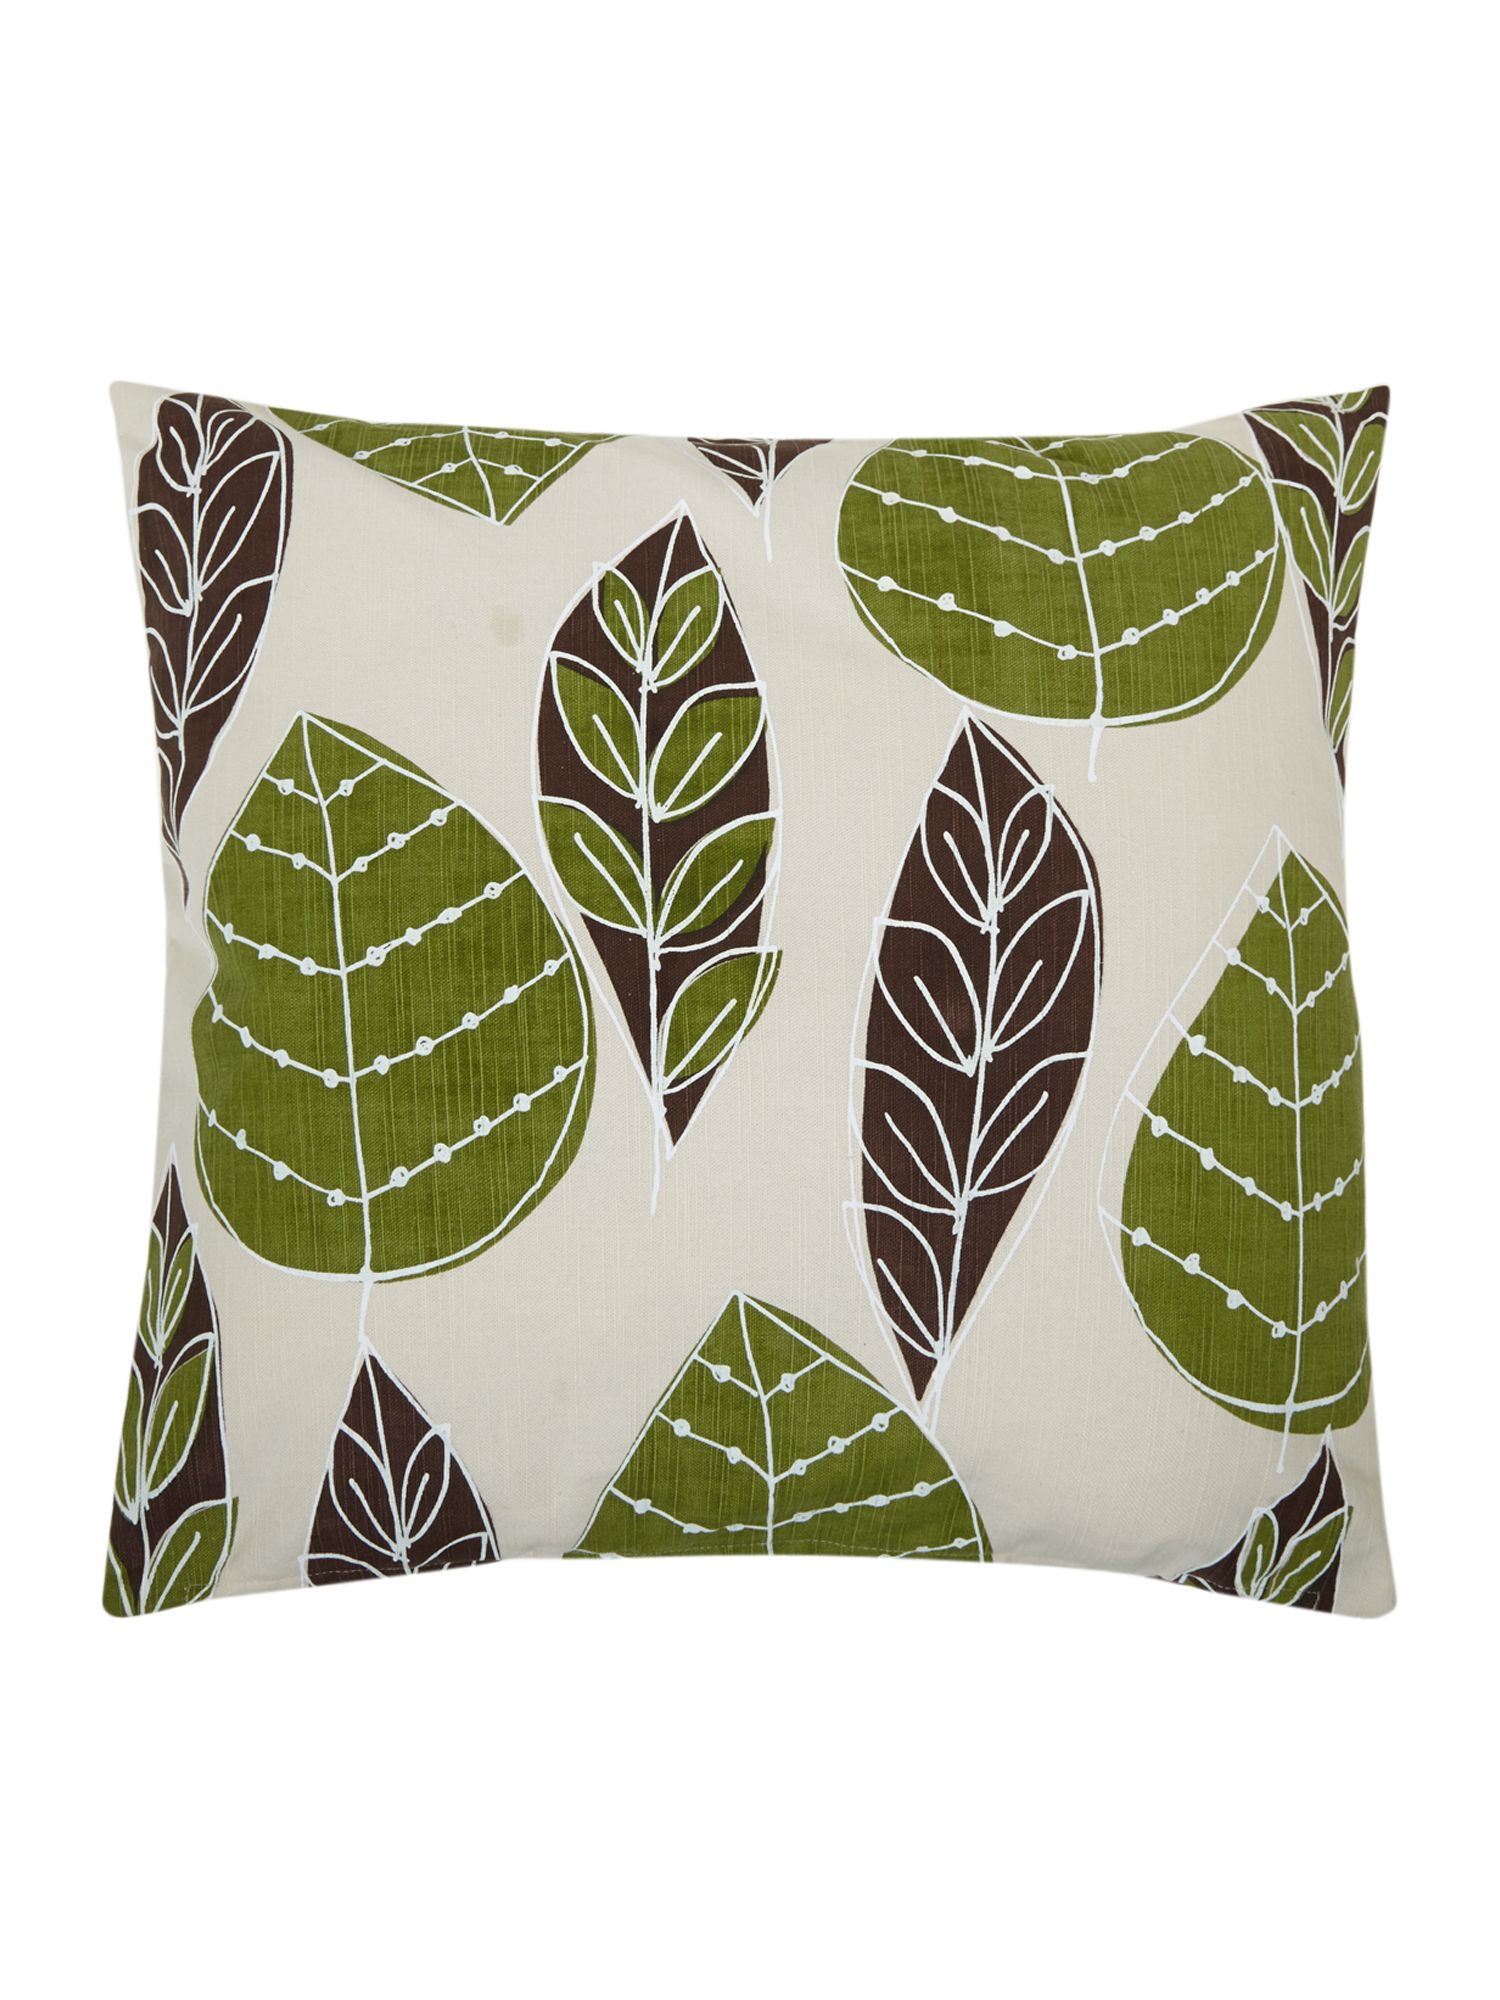 Green and brown leaf print cushion